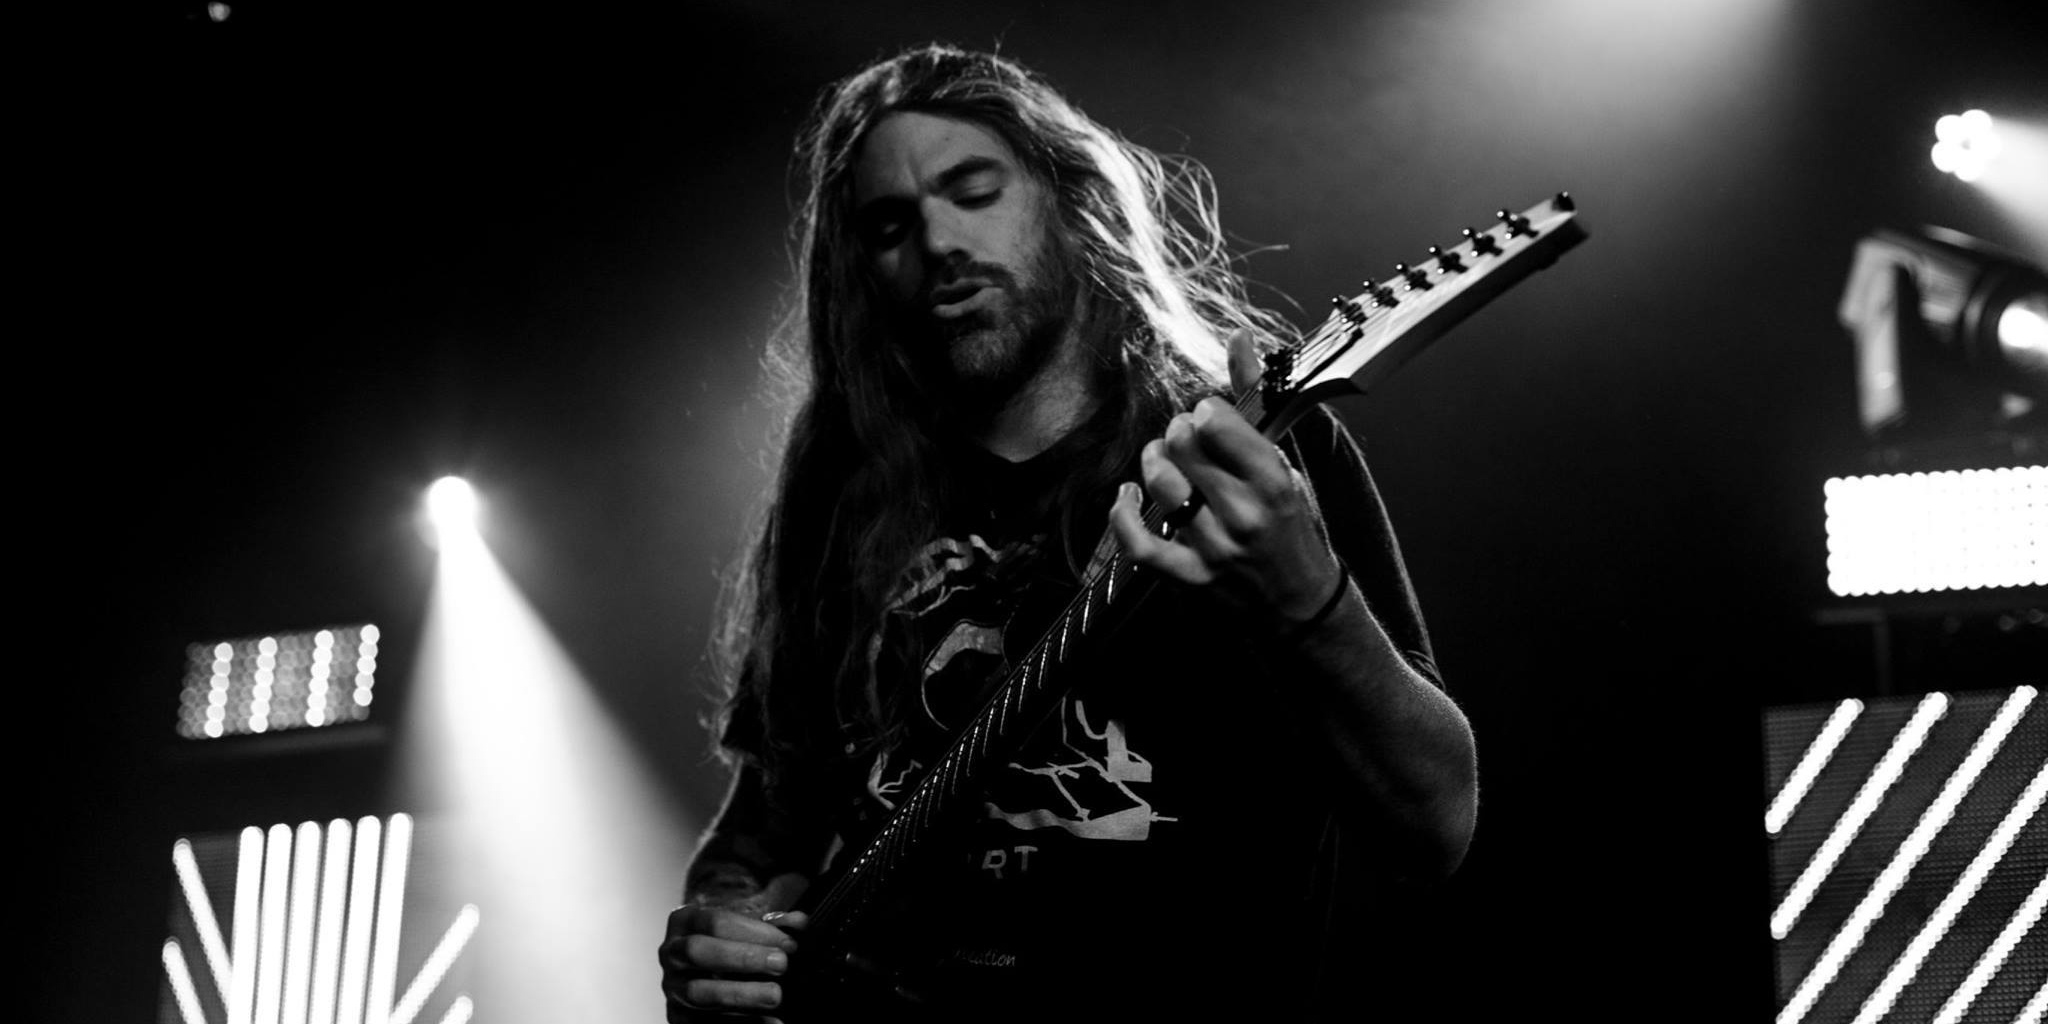 Between The Buried And Me's Paul Waggoner will hold a guitar clinic in Singapore